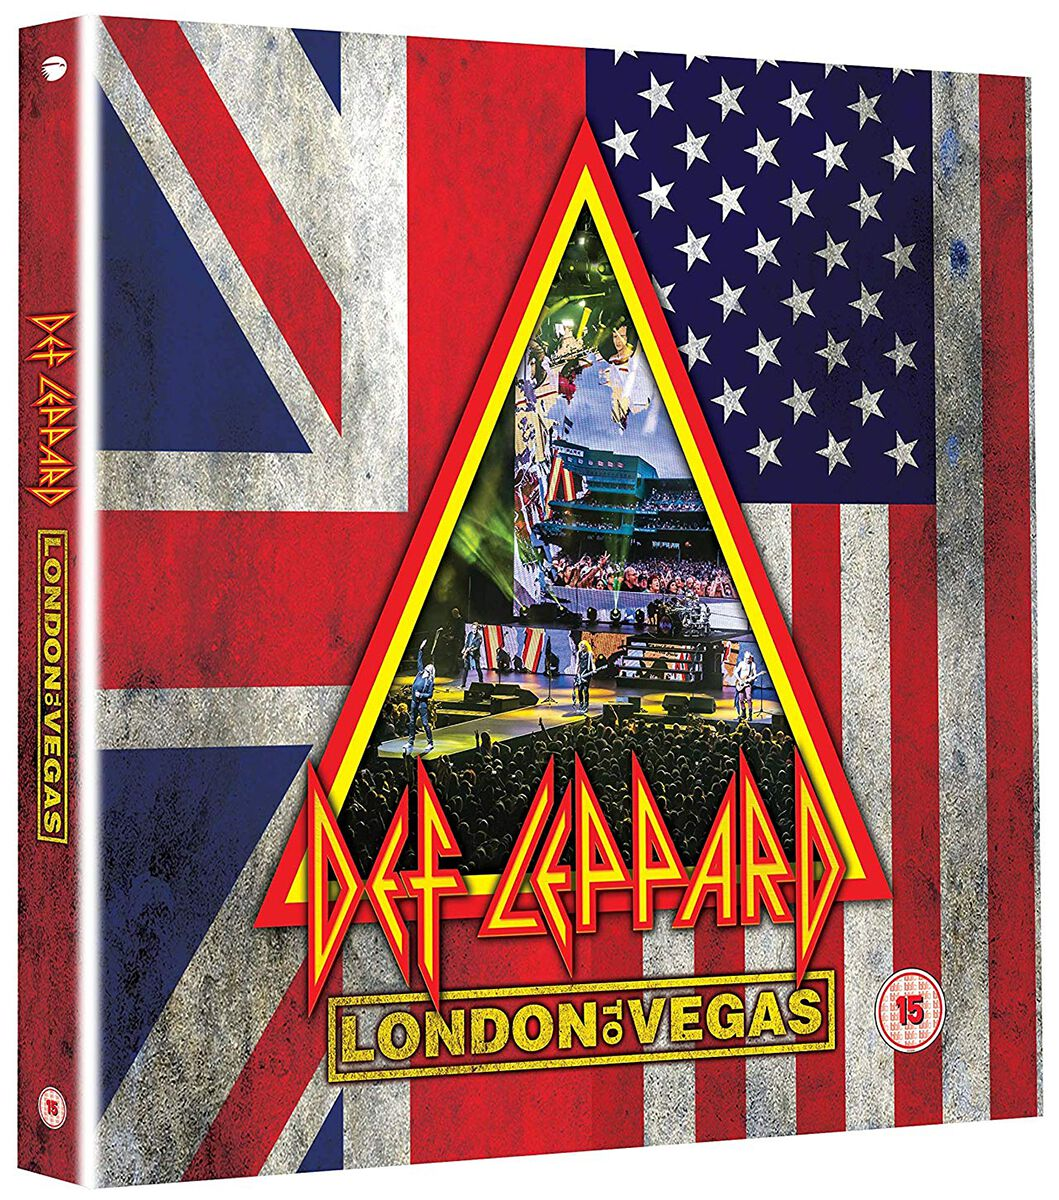 Image of Def Leppard London to Vegas 2-DVD & 4-CD Standard